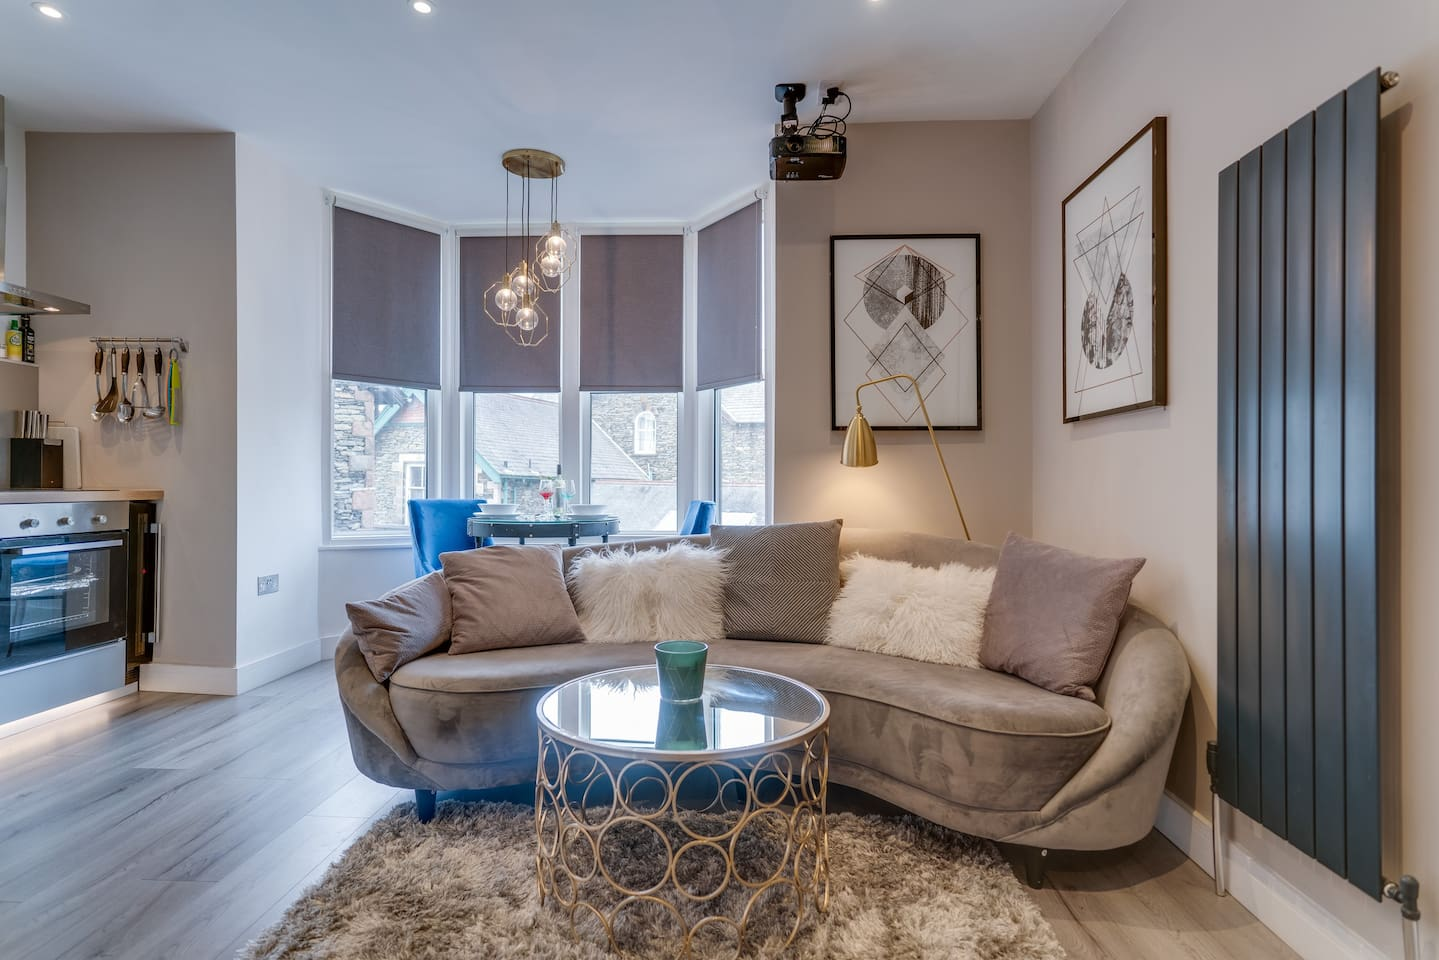 Modern and clean. Full kitchen facilities including wine fridge and coffee machine. Large projector screen to watch movies as well as playstation